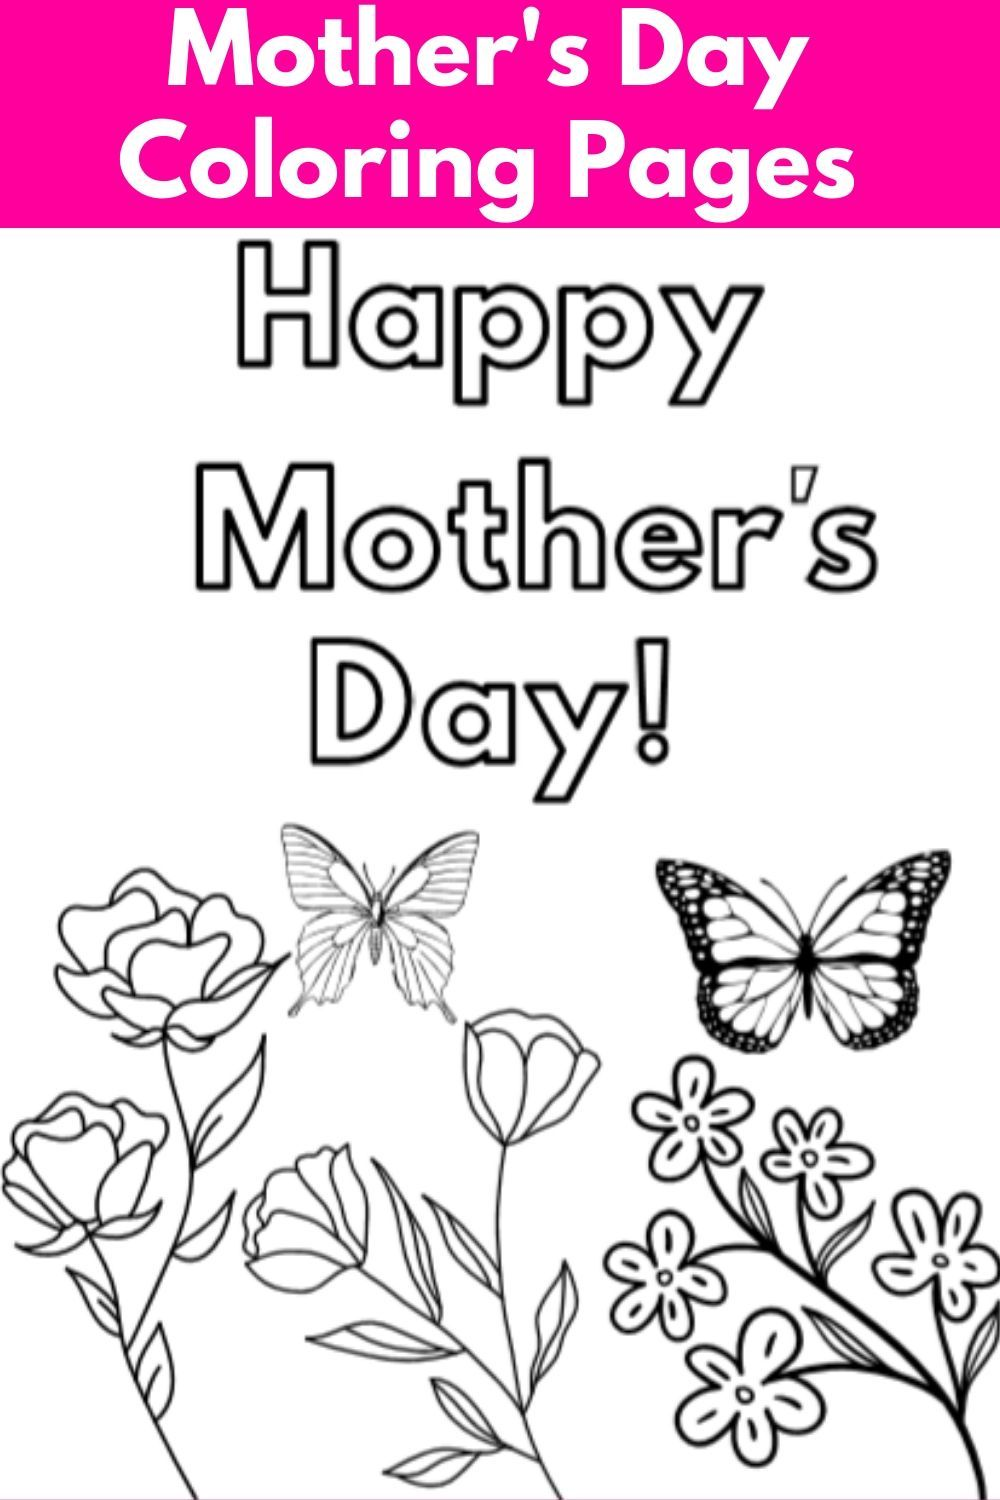 Beautiful Mother's Day Coloring Pages Free   Craft Corner ...